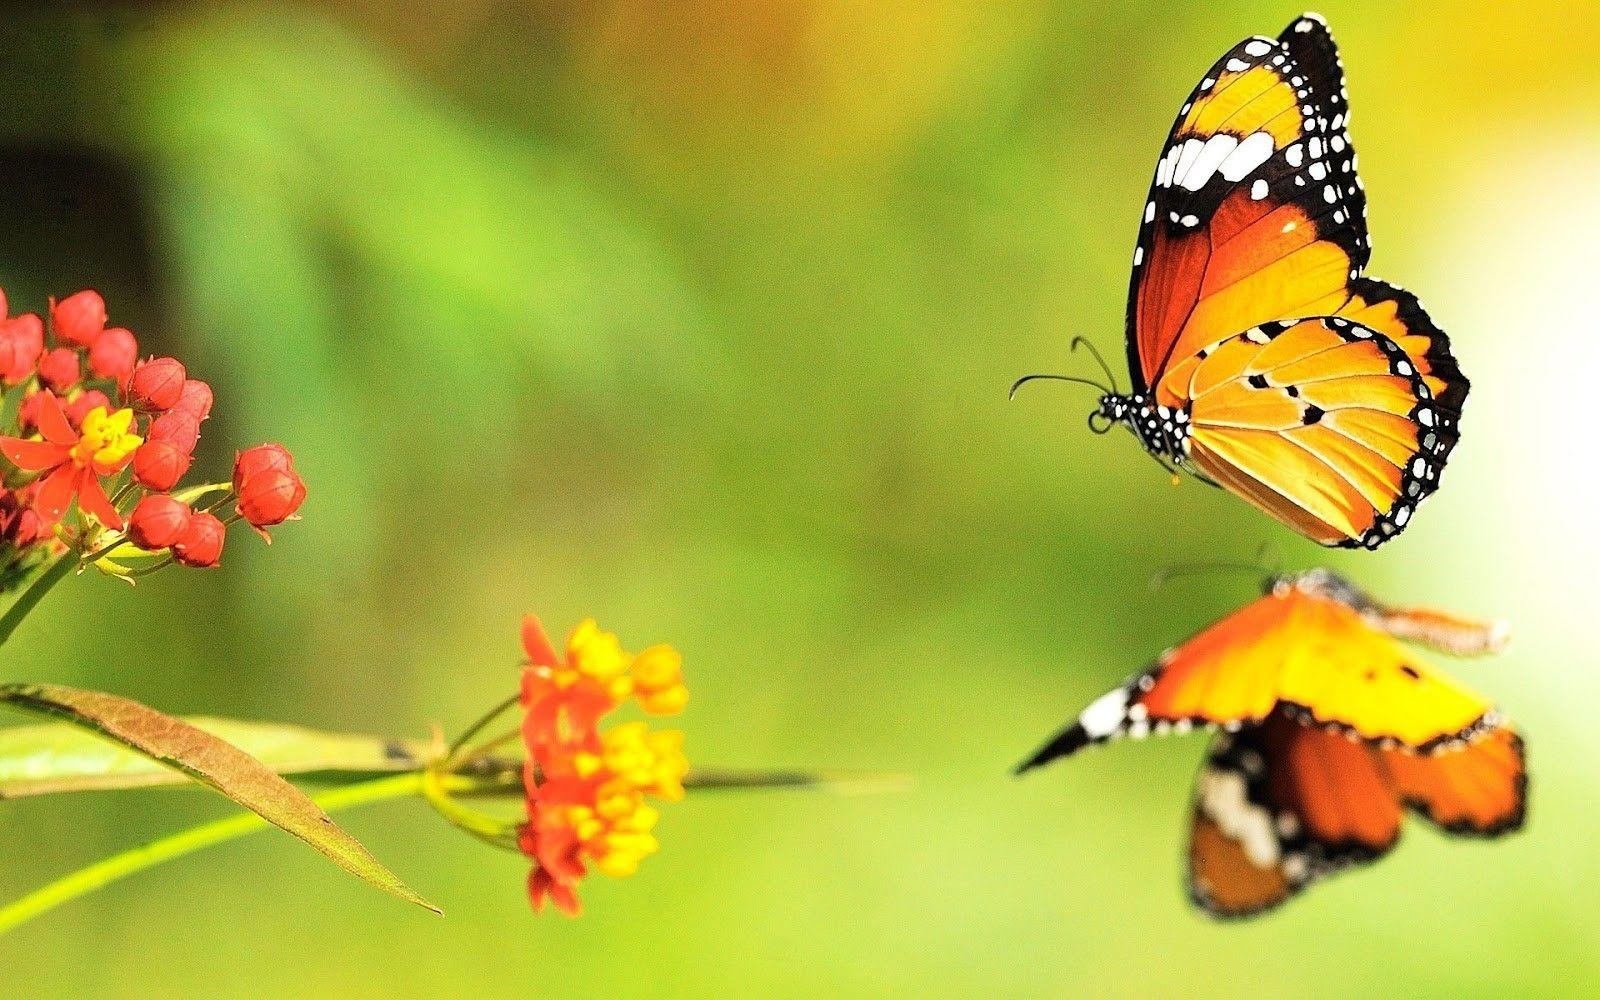 Butterflies Amazing Full Screen HD Wallpapers | HD Wallapers for Free